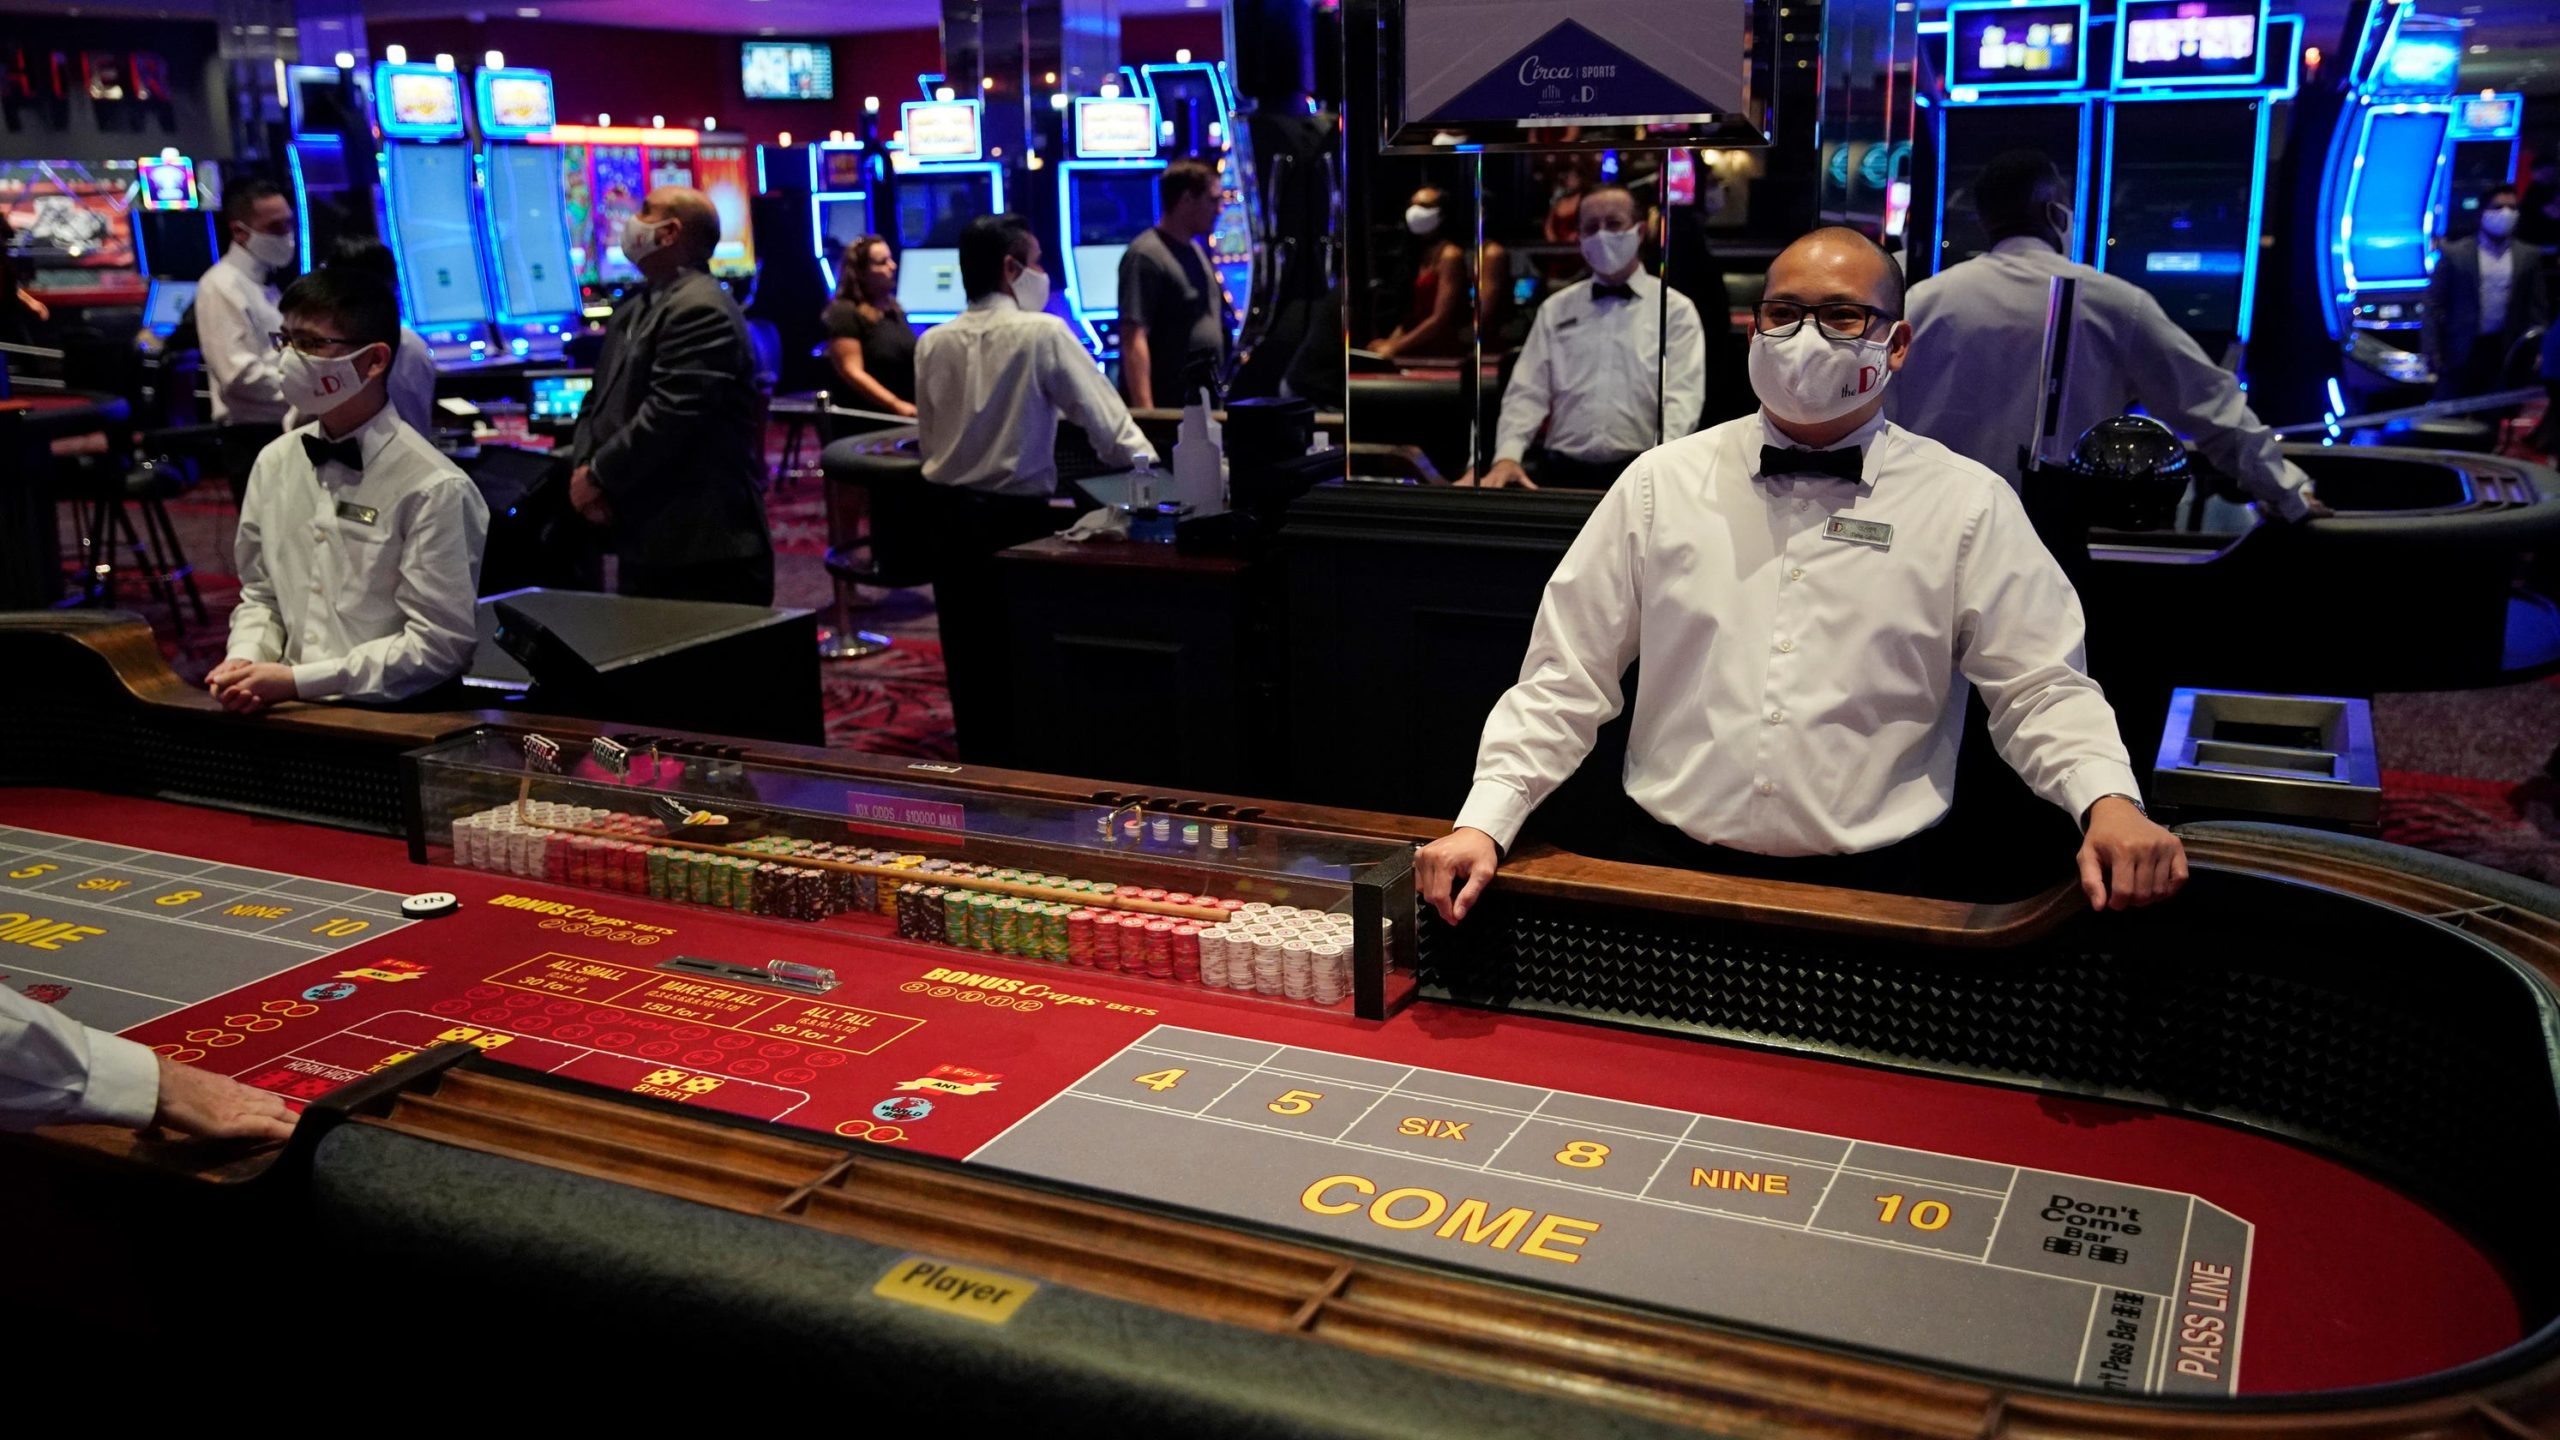 MGM Resorts International announces nationwide mask policy